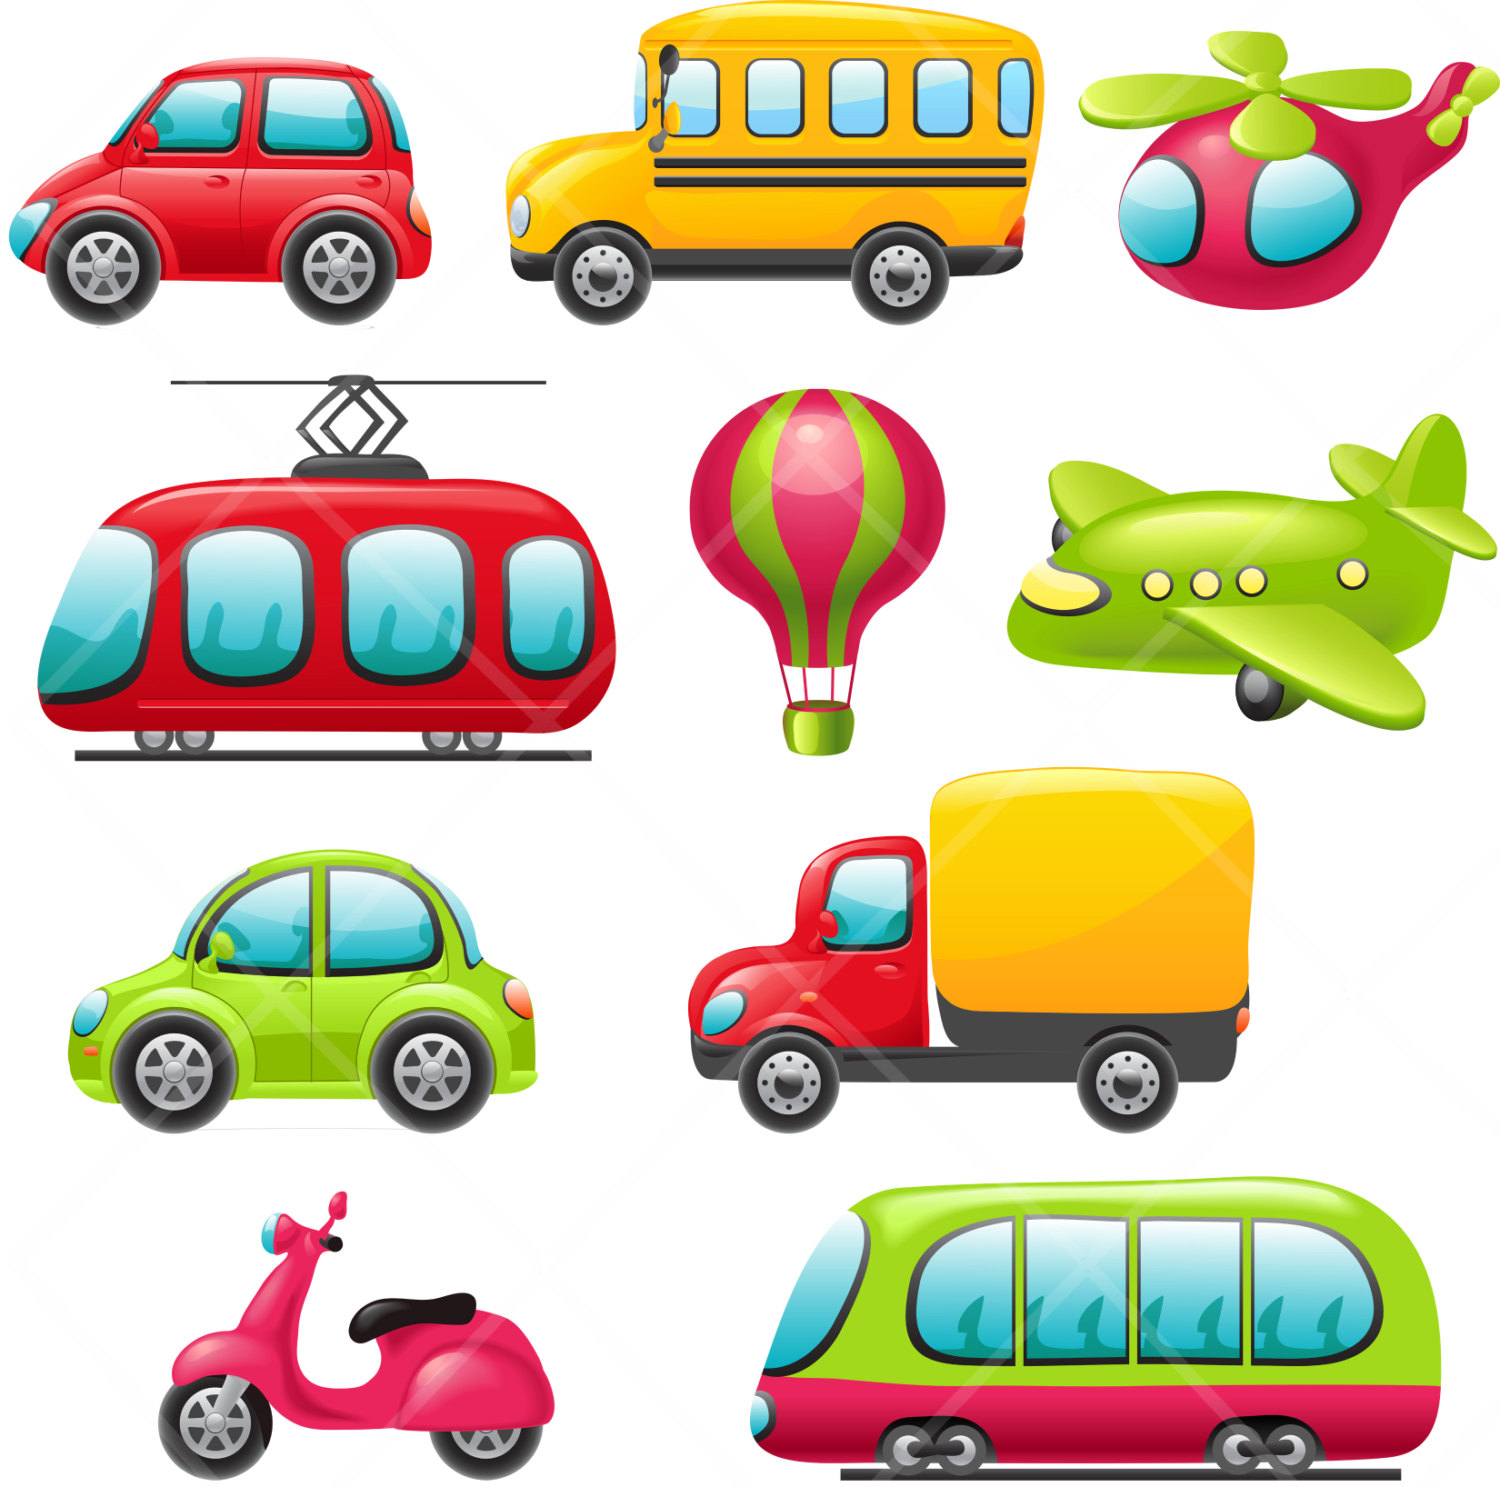 Free Toy Car Clipart, Download Free Clip Art, Free Clip Art